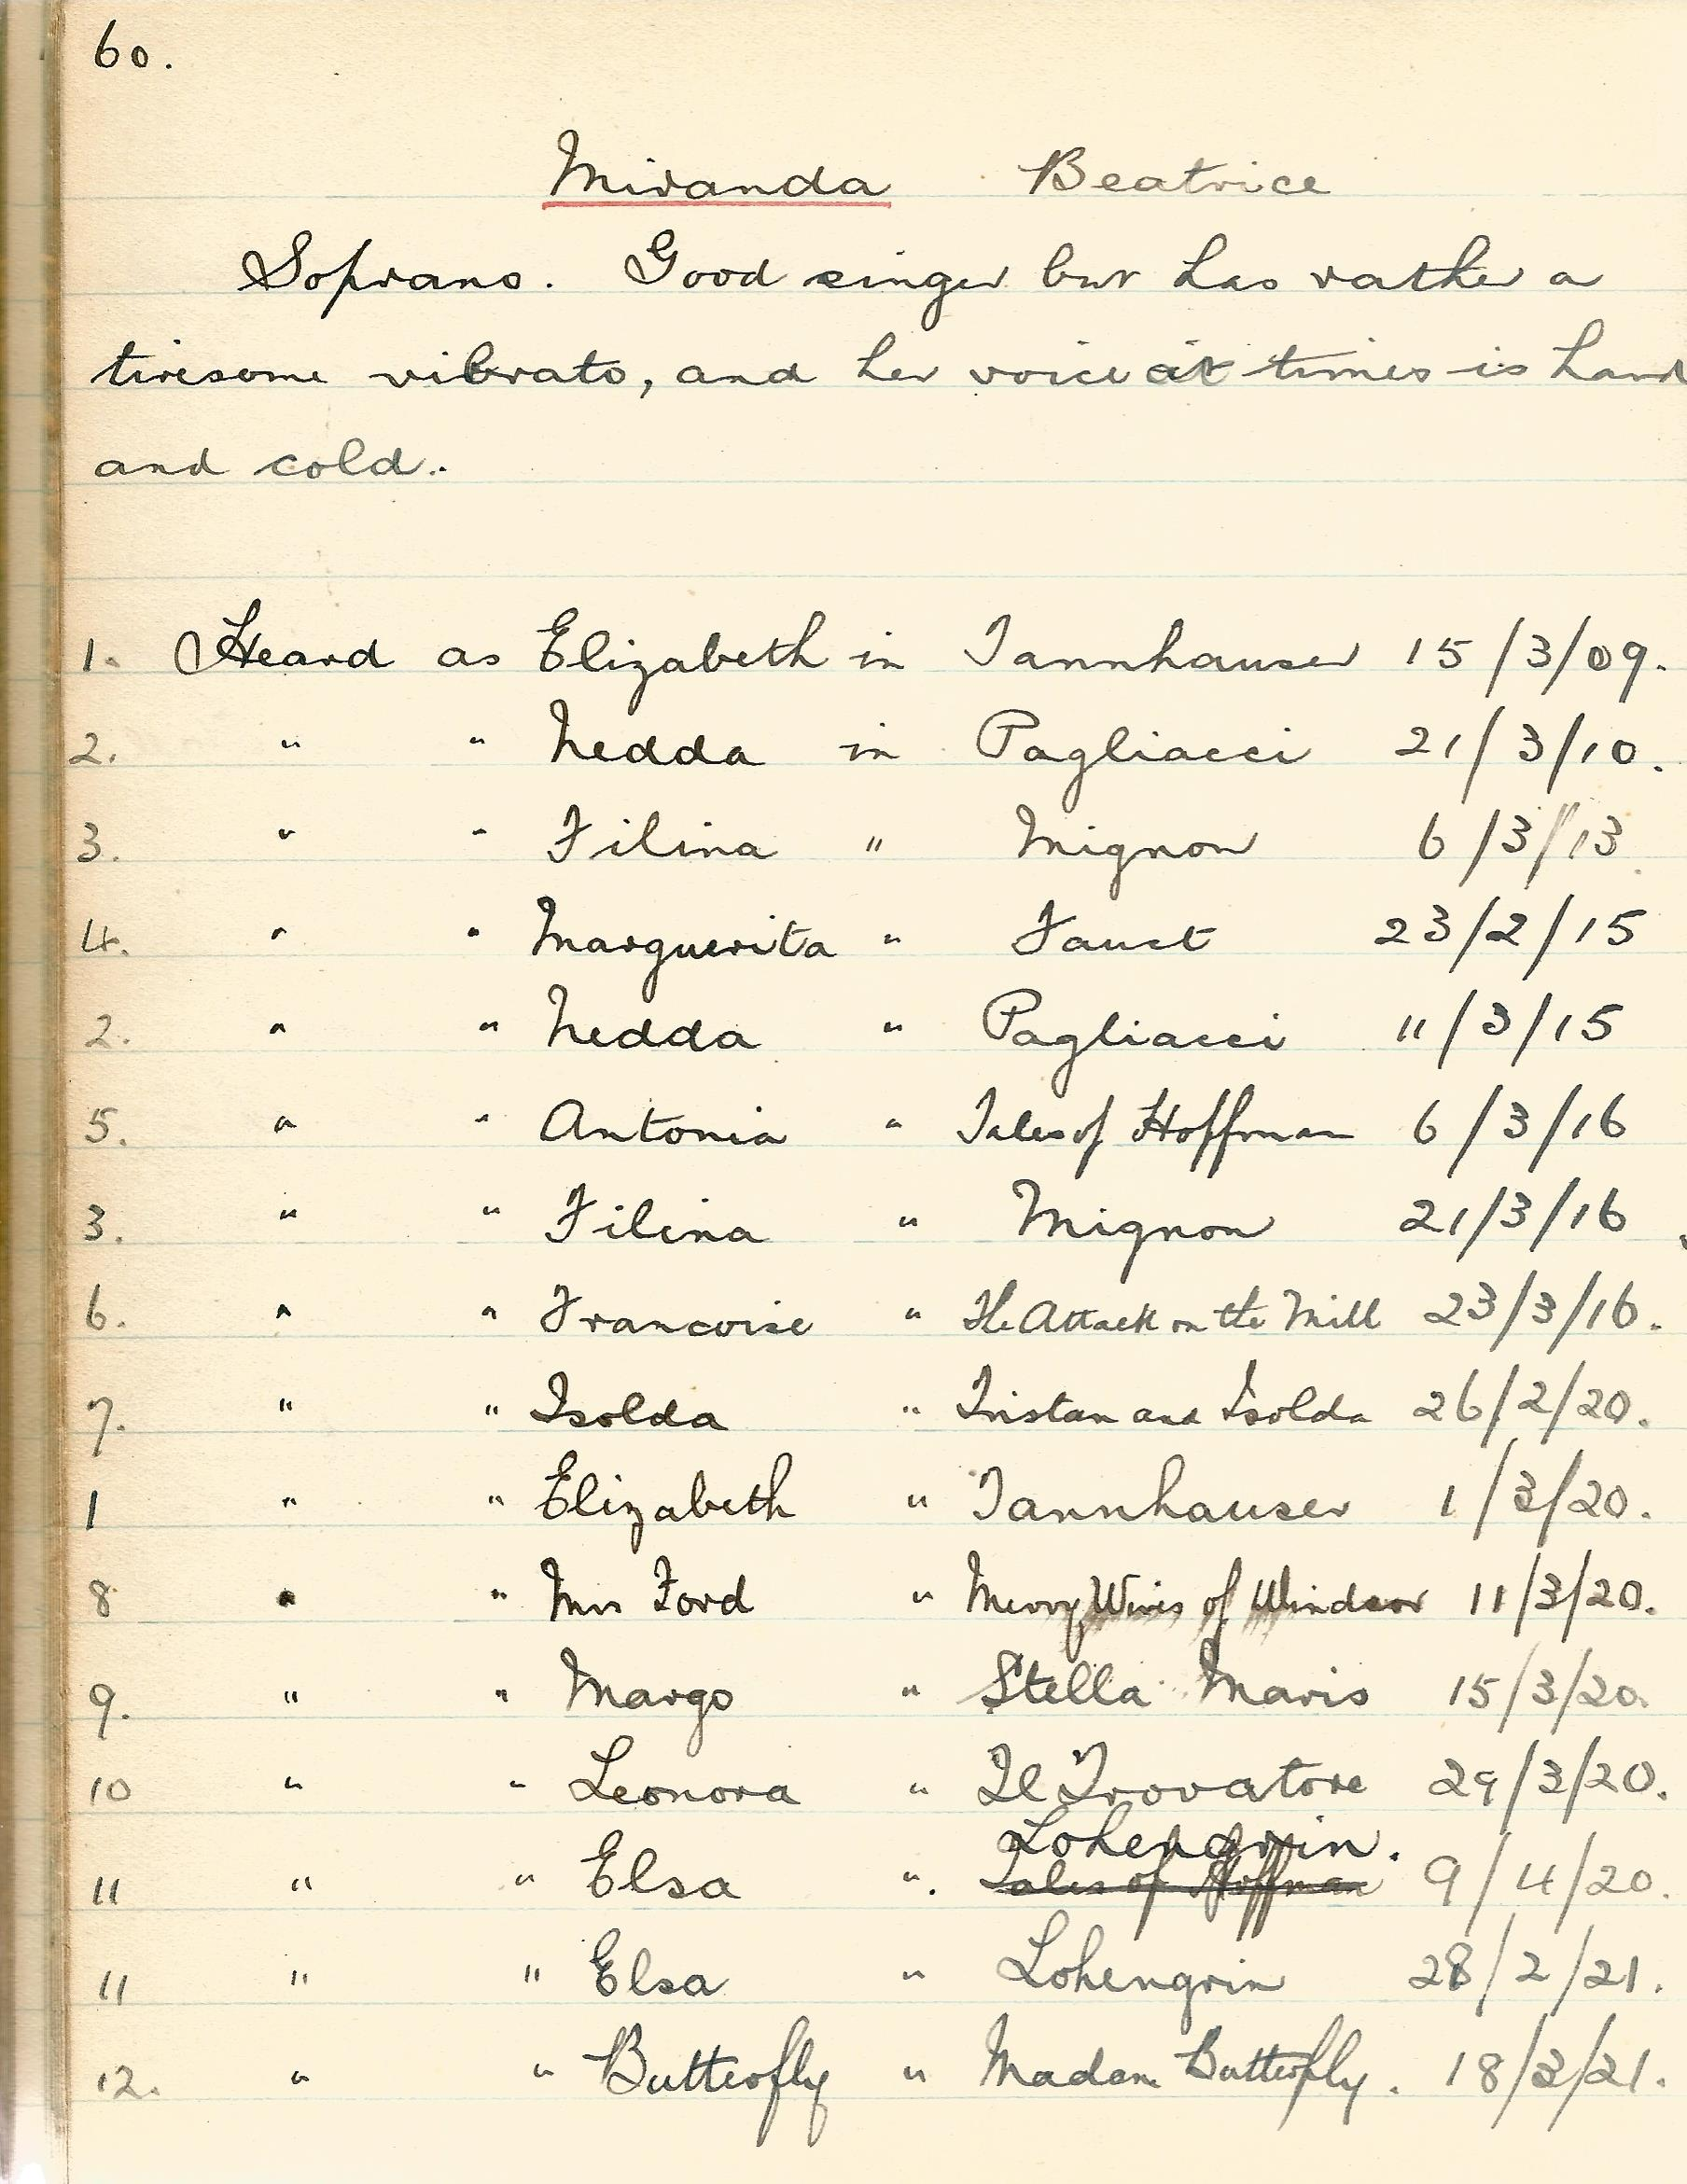 Diary Notebook of Music Opera, Pianists, Violinists, Vocalists, Organists, Operas & Orchestras - Image 5 of 6